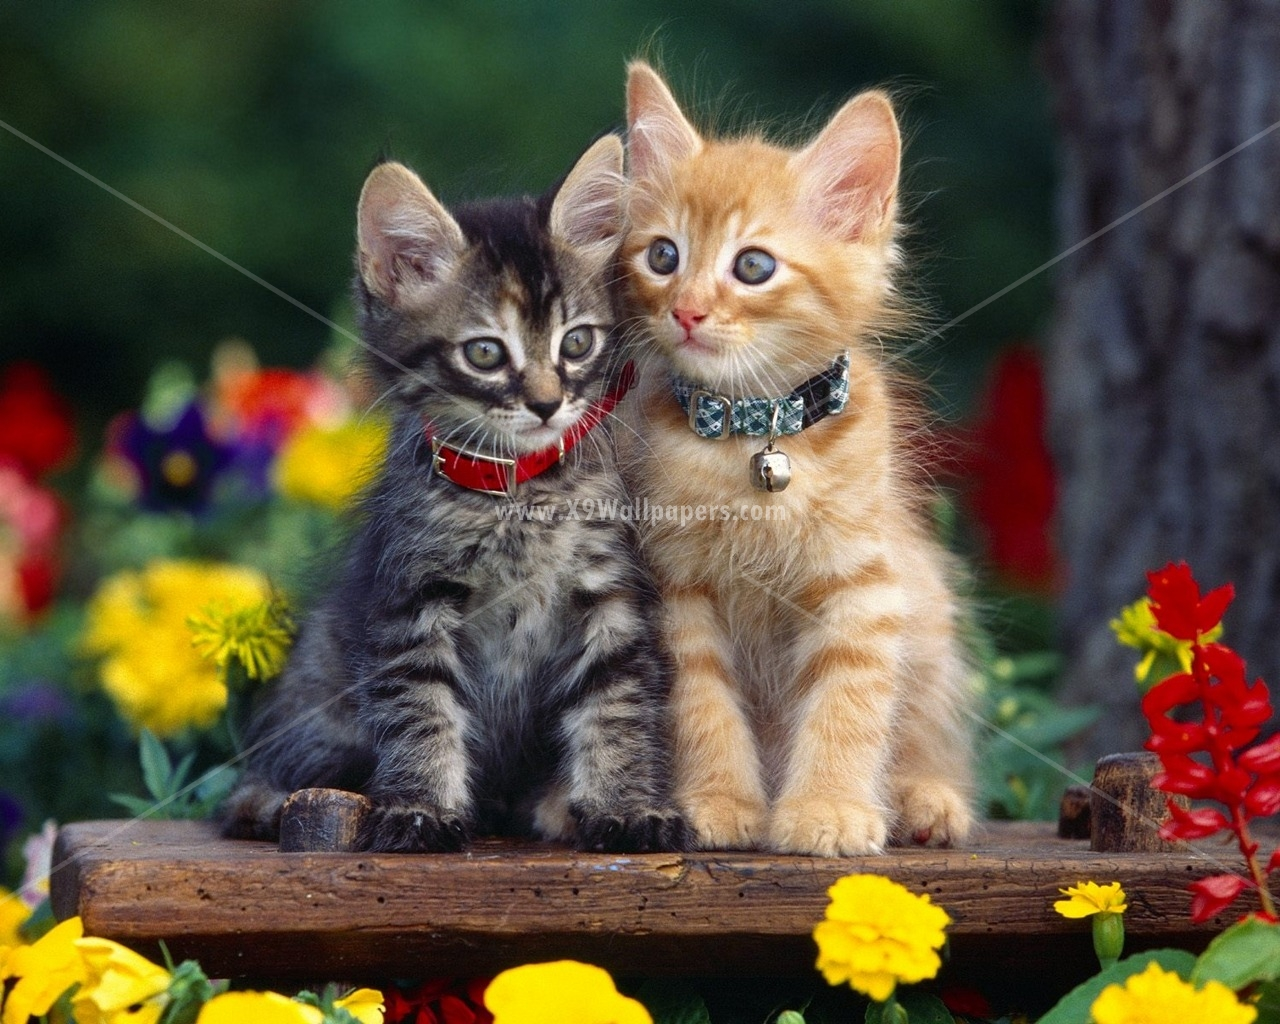 Cute Puppies And Kittens Wallpaper: 50 Cute And Beautiful Cats And Dogs HD Wallpapers And